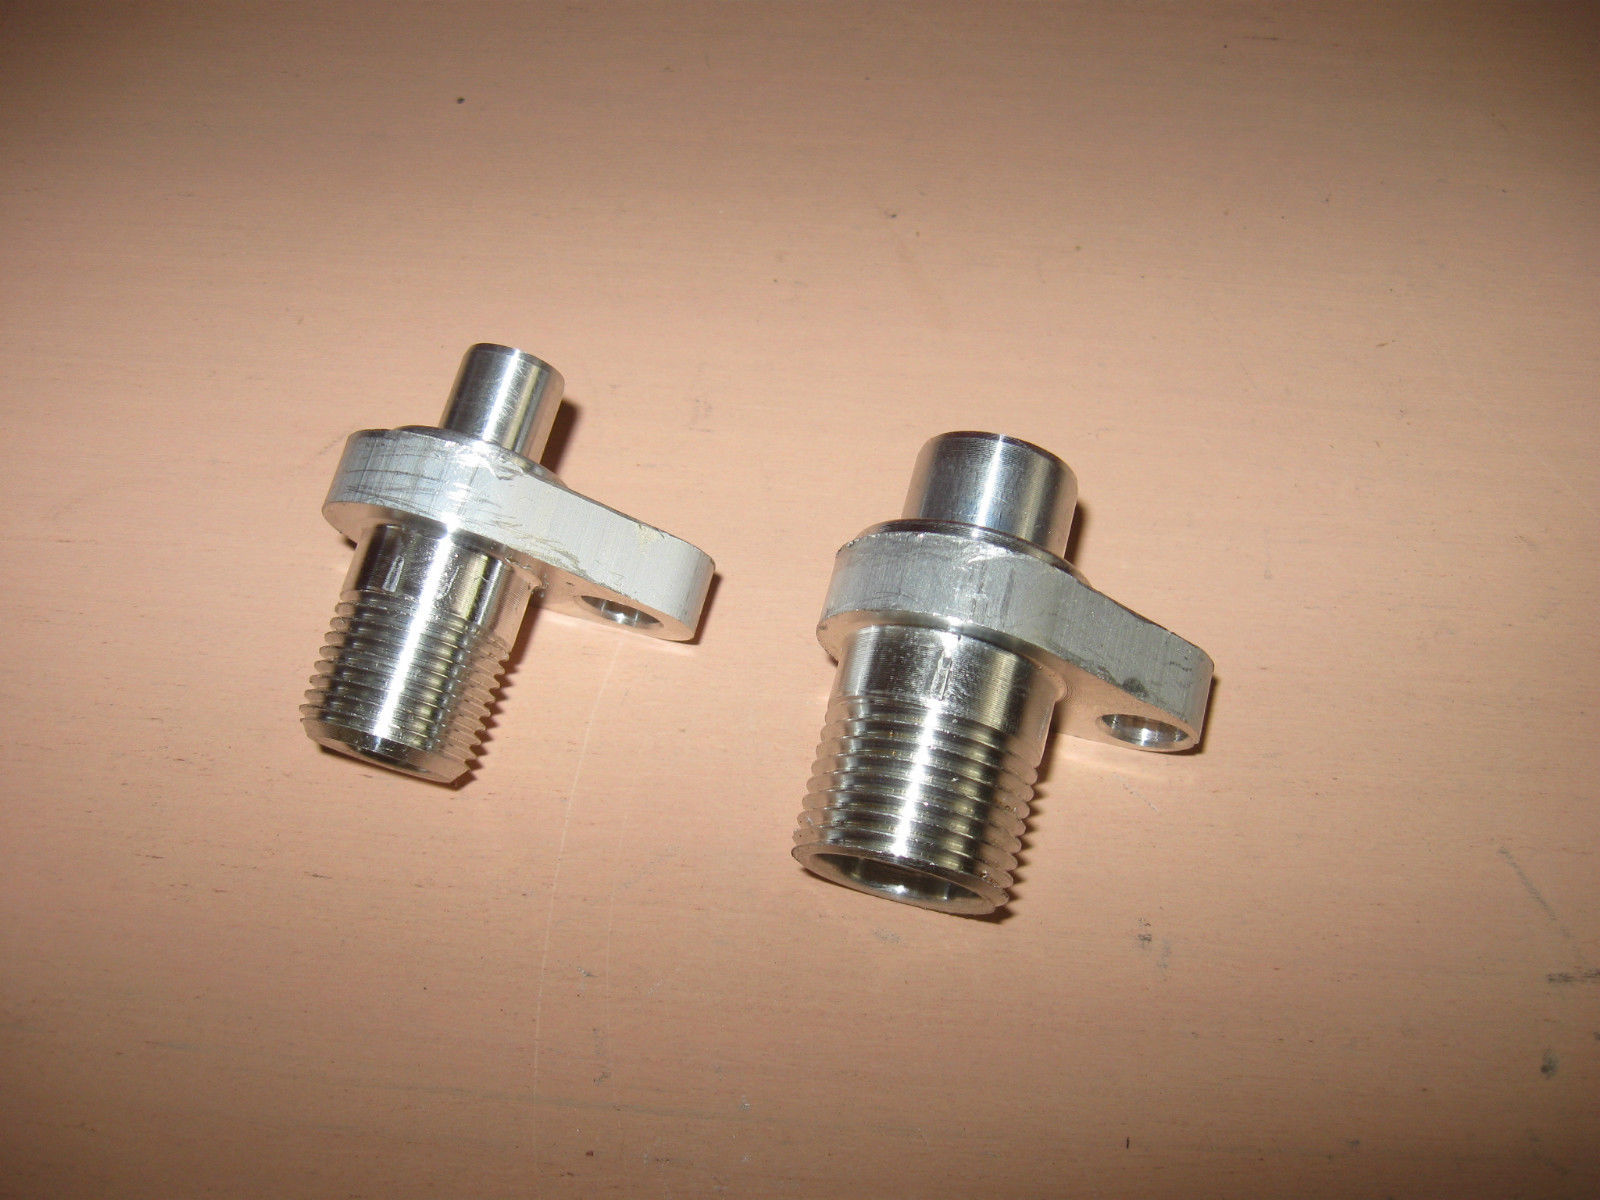 LS Swap AC Compressor adapter fittings for Denso 10S17F ...